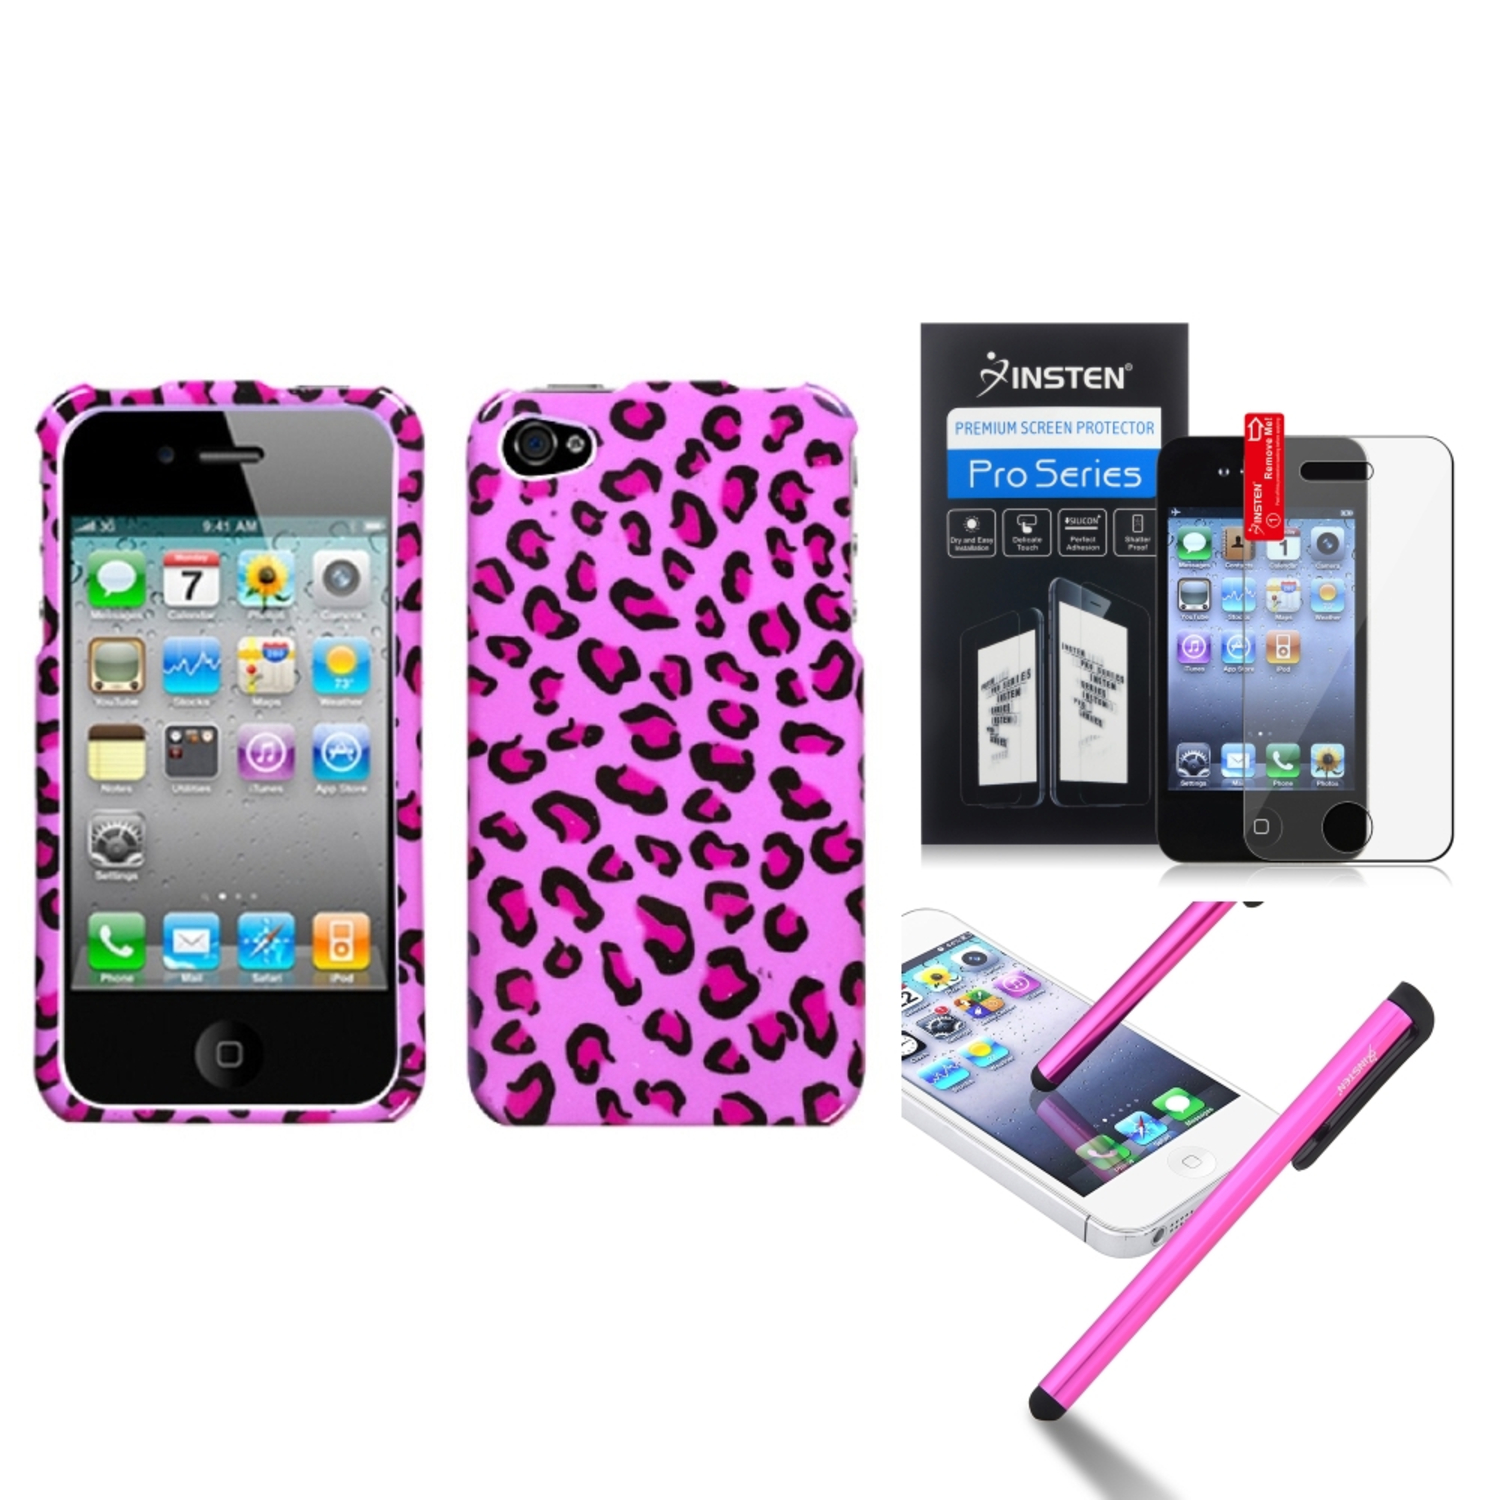 Insten Pink Leopard Skin Phone Case Cover Protector Stylus For APPLE iPhone 4S/4